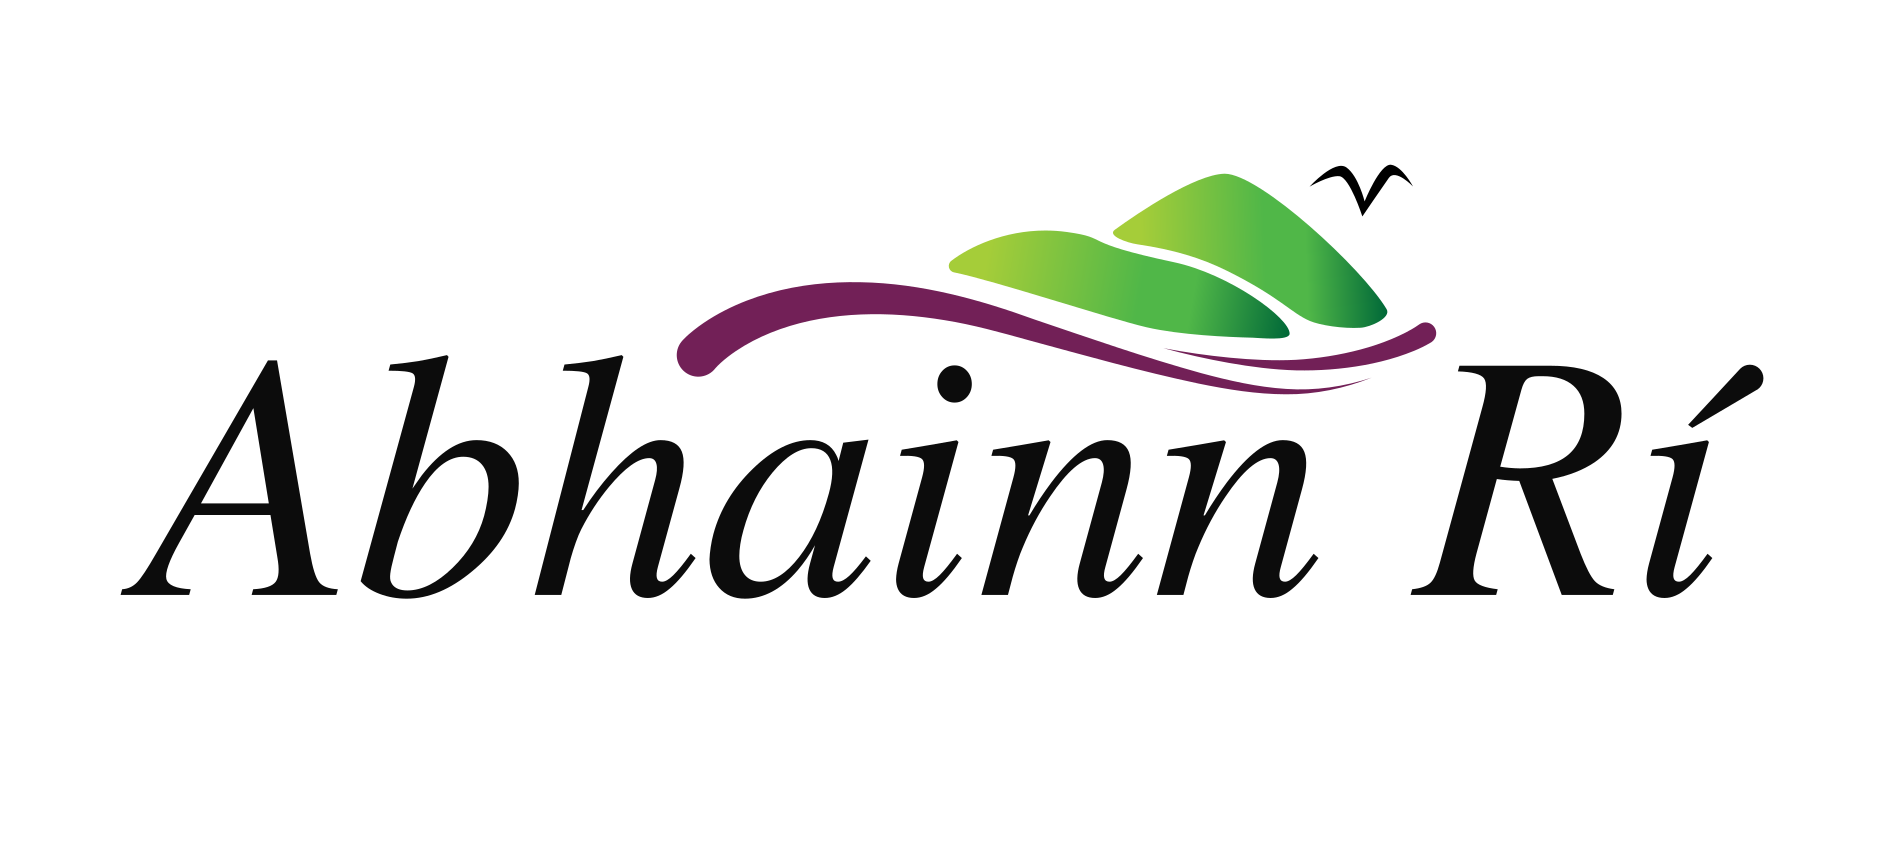 Abhainn Rí Bed & Breakfast Logo